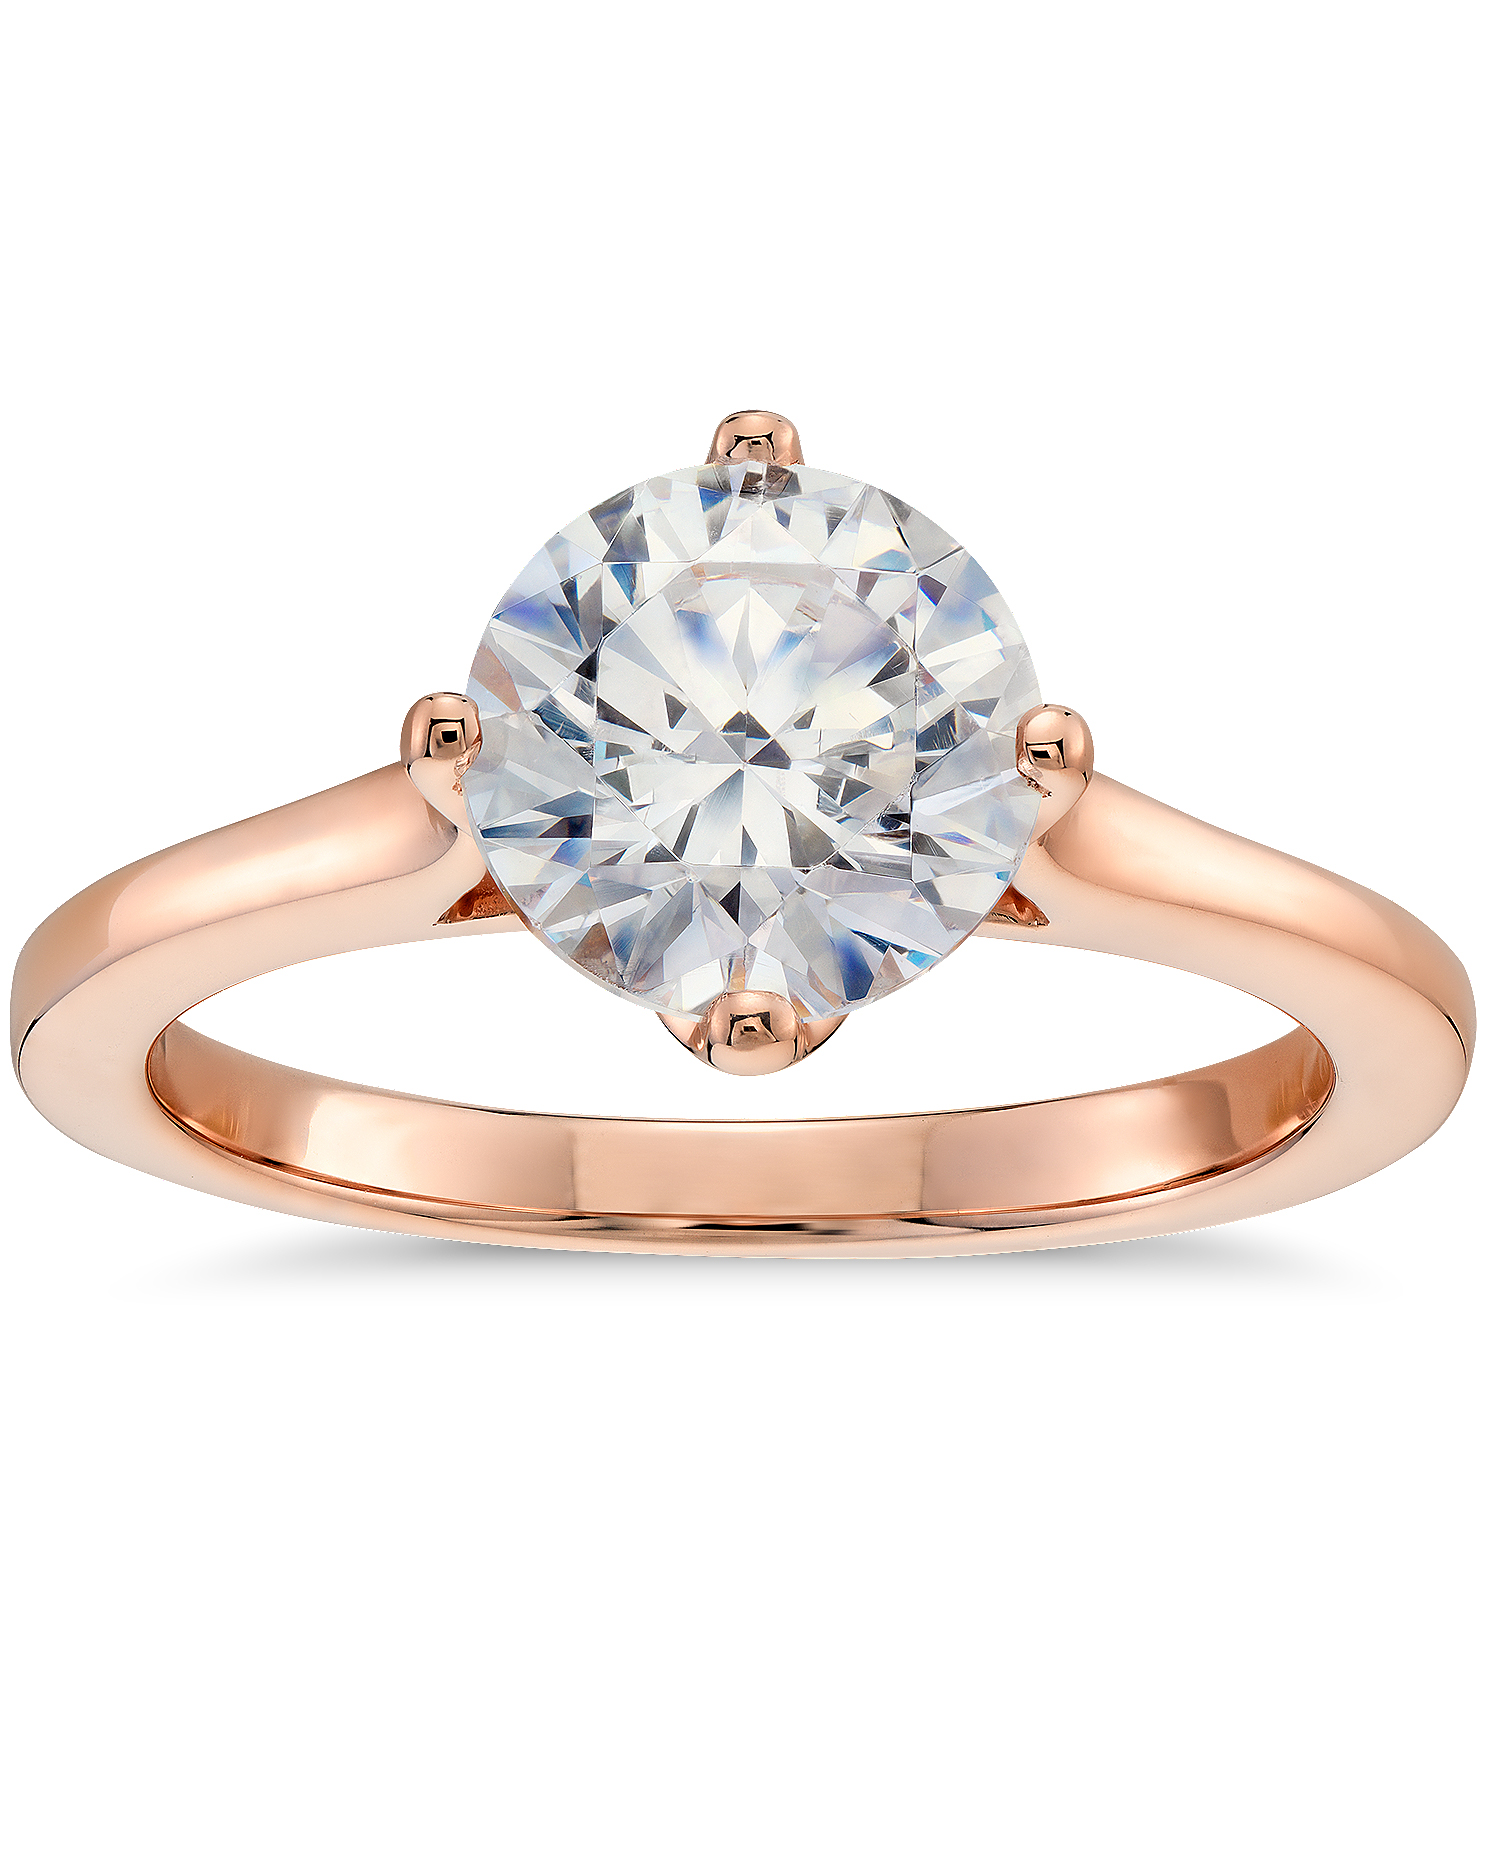 blue-nile-rose-gold-east-west-solitaire-engagement-ring-0816.jpg